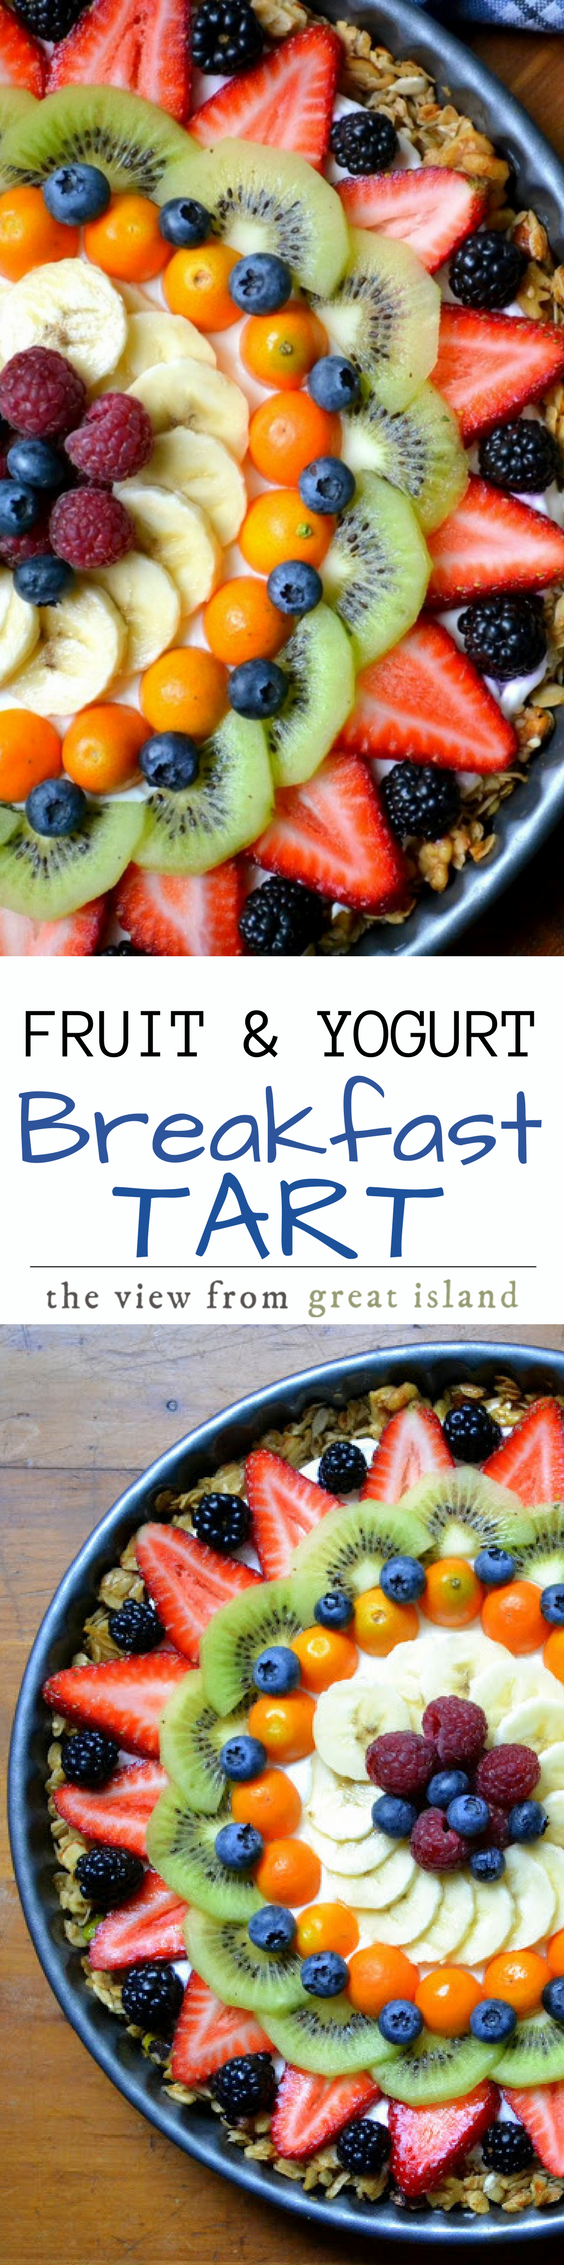 Beautiful Fruit and Yogurt Breakfast Tart ~ this gluten free tart is perfect for any occasion, just use whatever fruit is in season! | brunch | Mother's Day | Easter | Fruit tart | fruit pizza | healthy | Whole 30 | Paleo